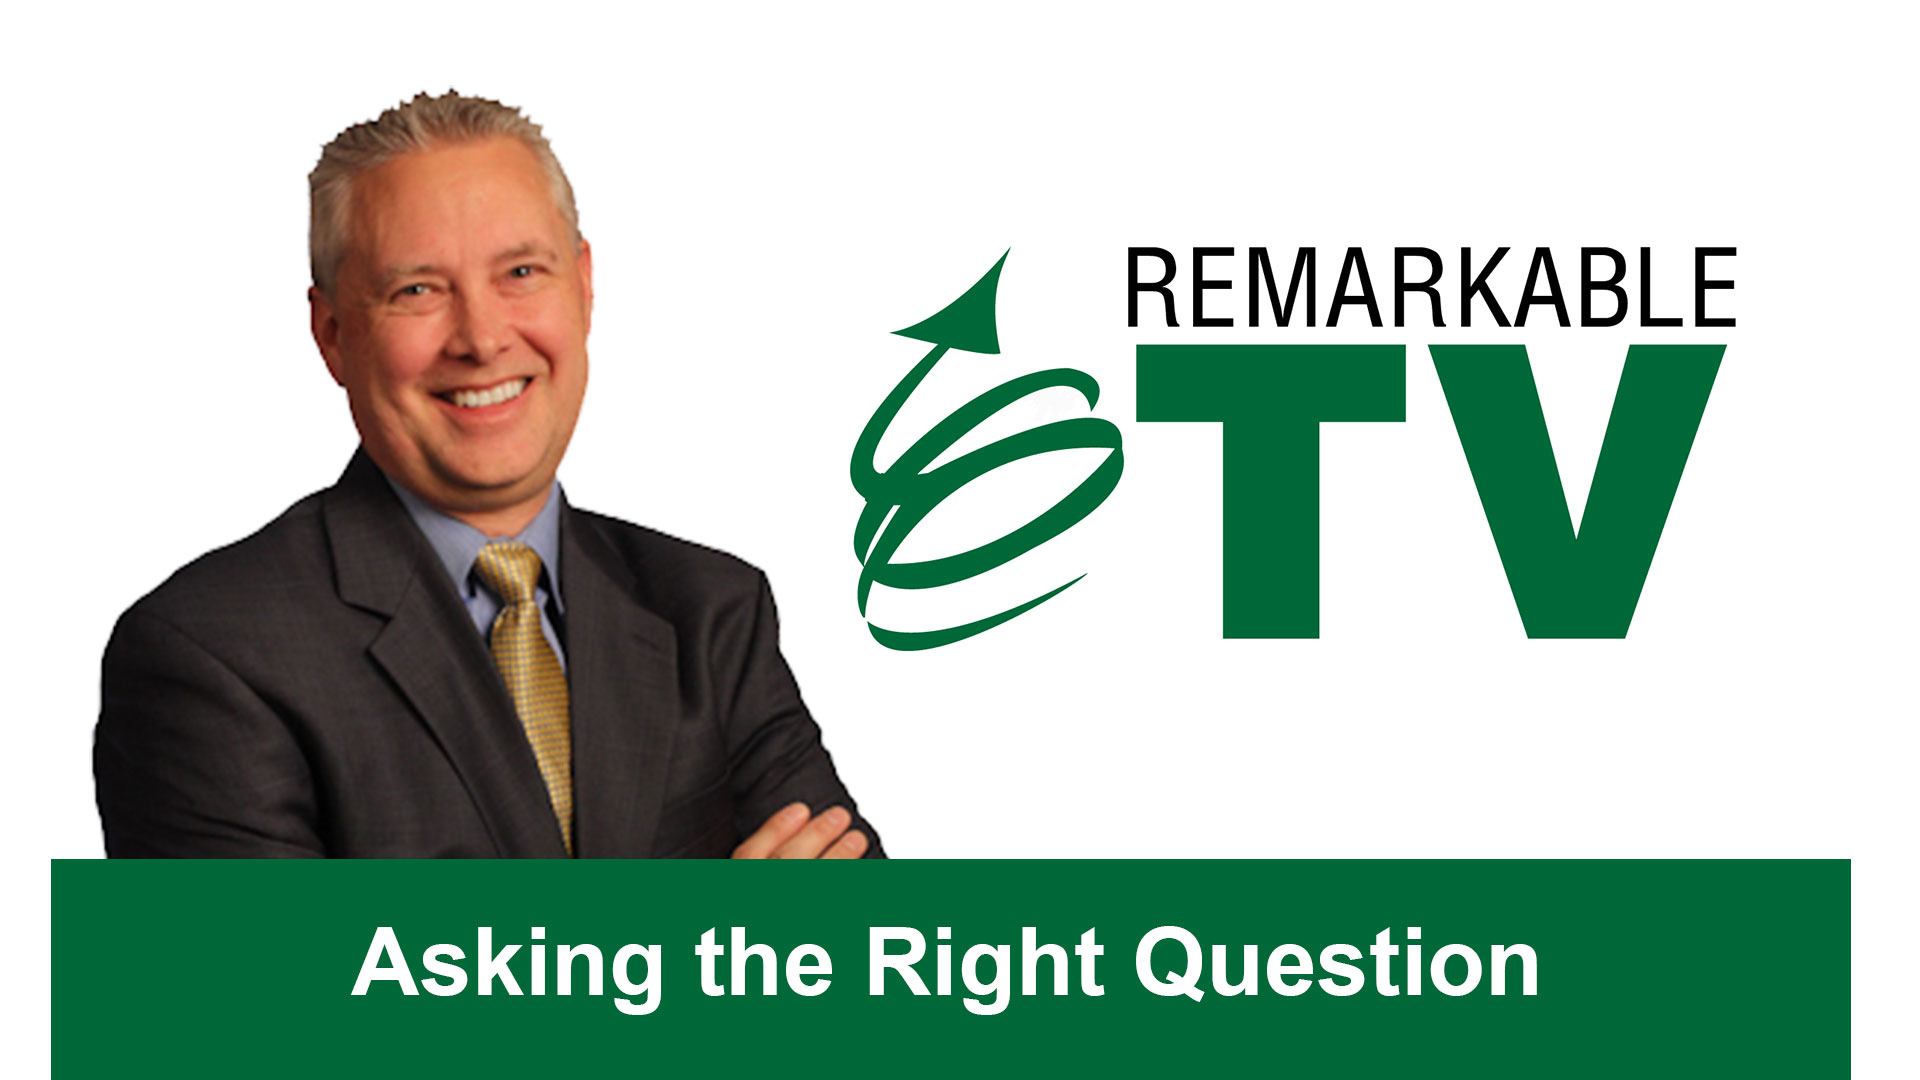 Remarkable TV: Asking the Right Question